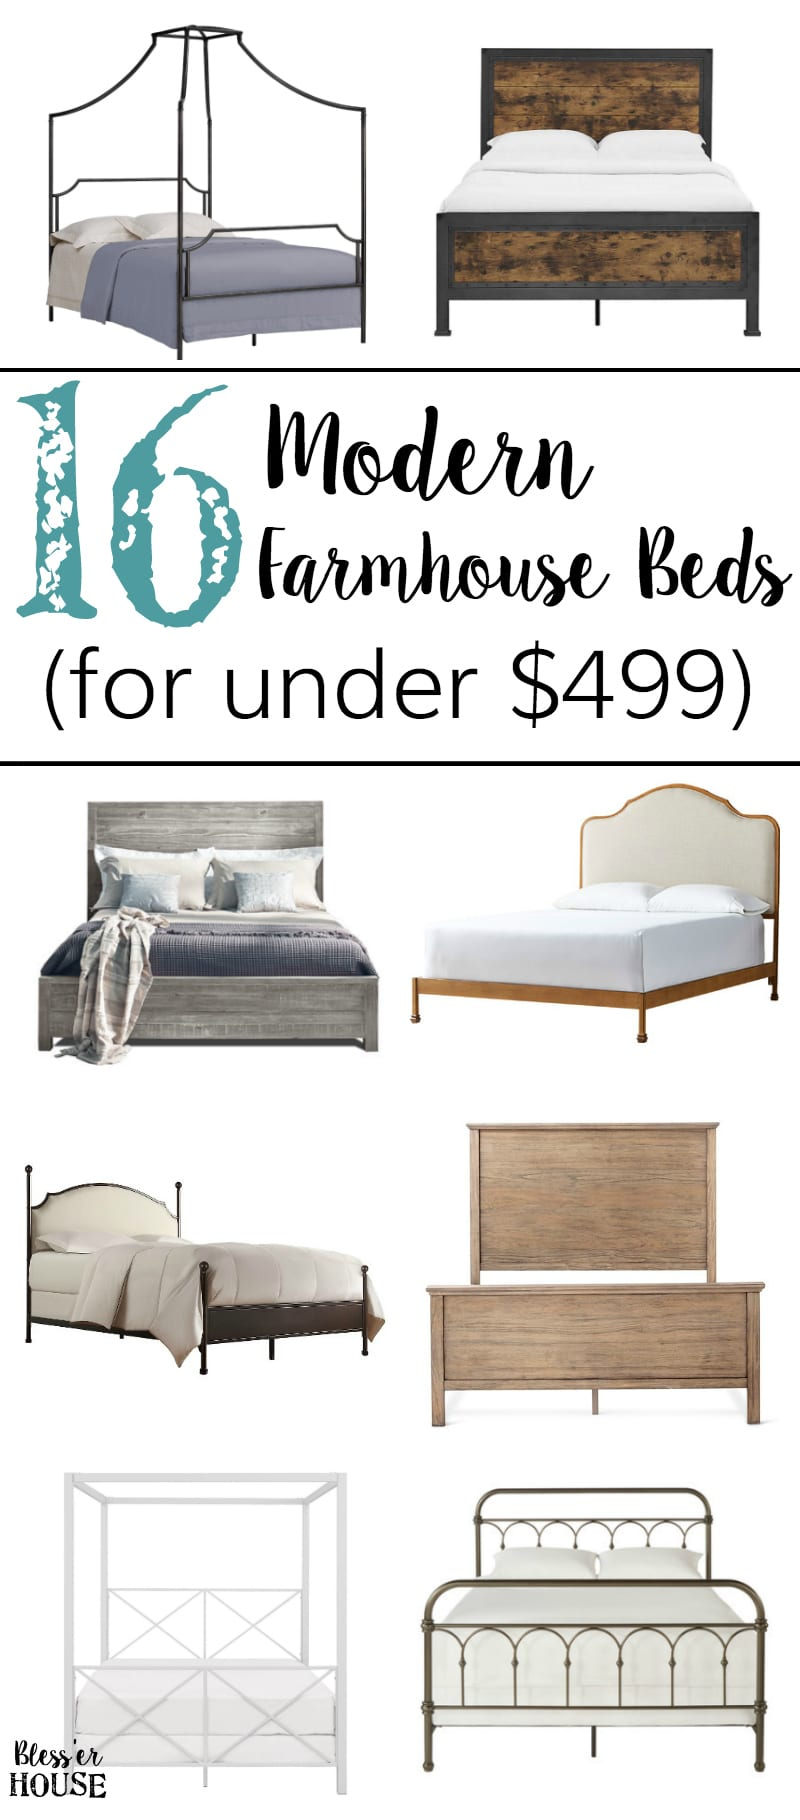 16 Modern Farmhouse Beds on a Small Budget | blesserhouse.com - A shopping guide featuring 16 modern farmhouse beds all for under $499 for glam, industrial, rustic, and traditional styles.